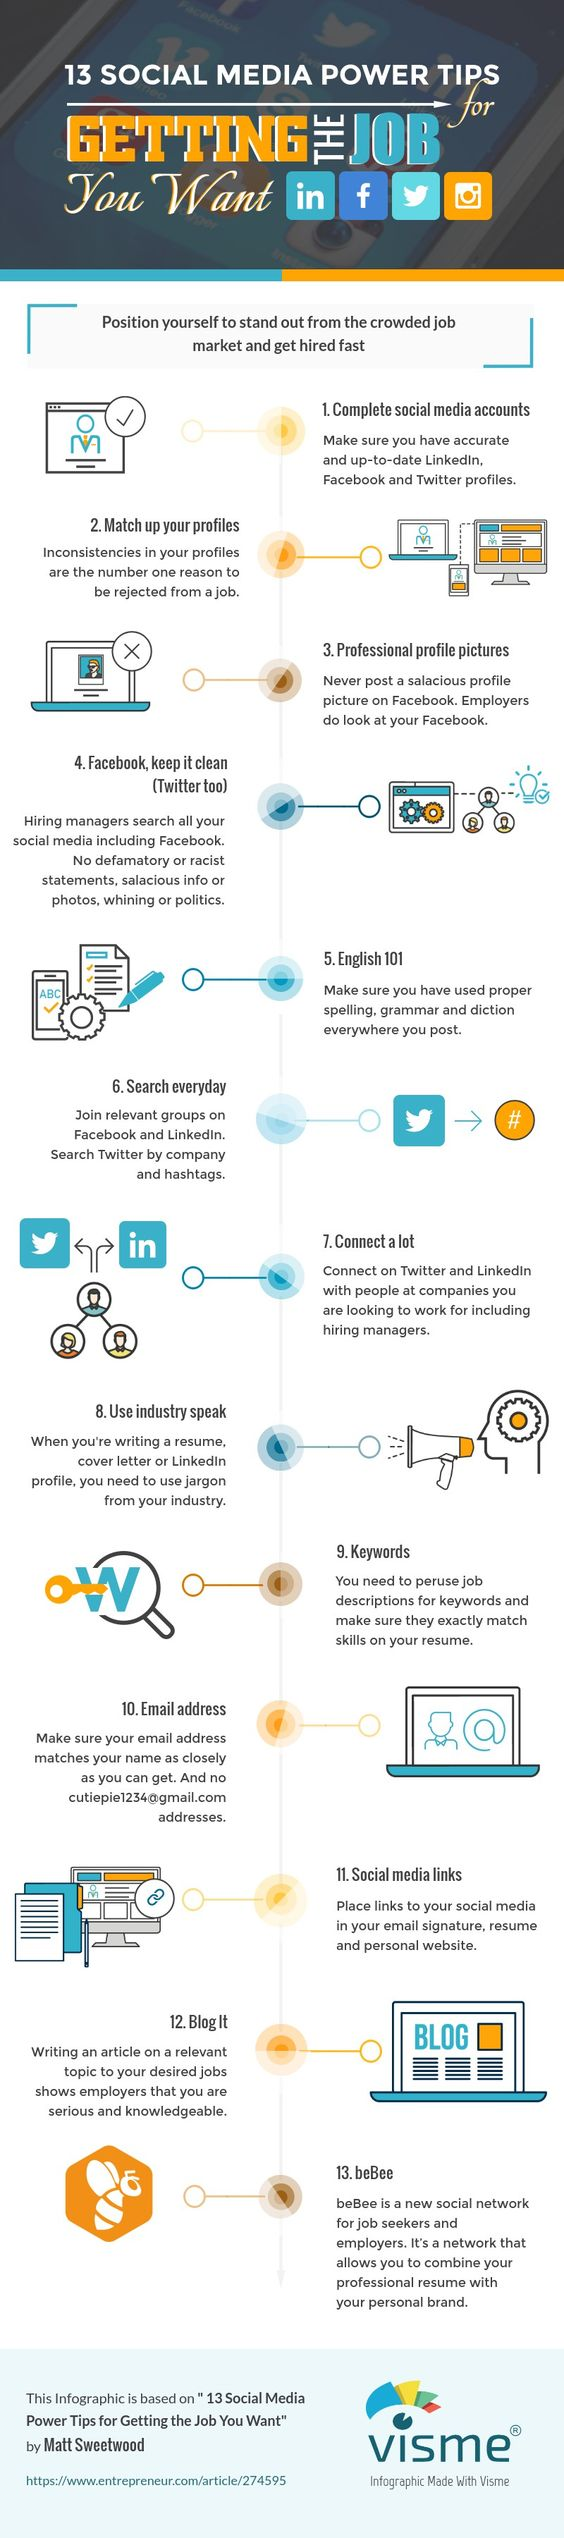 social media power tips to get the job you want infographic great social media power tips to get the job